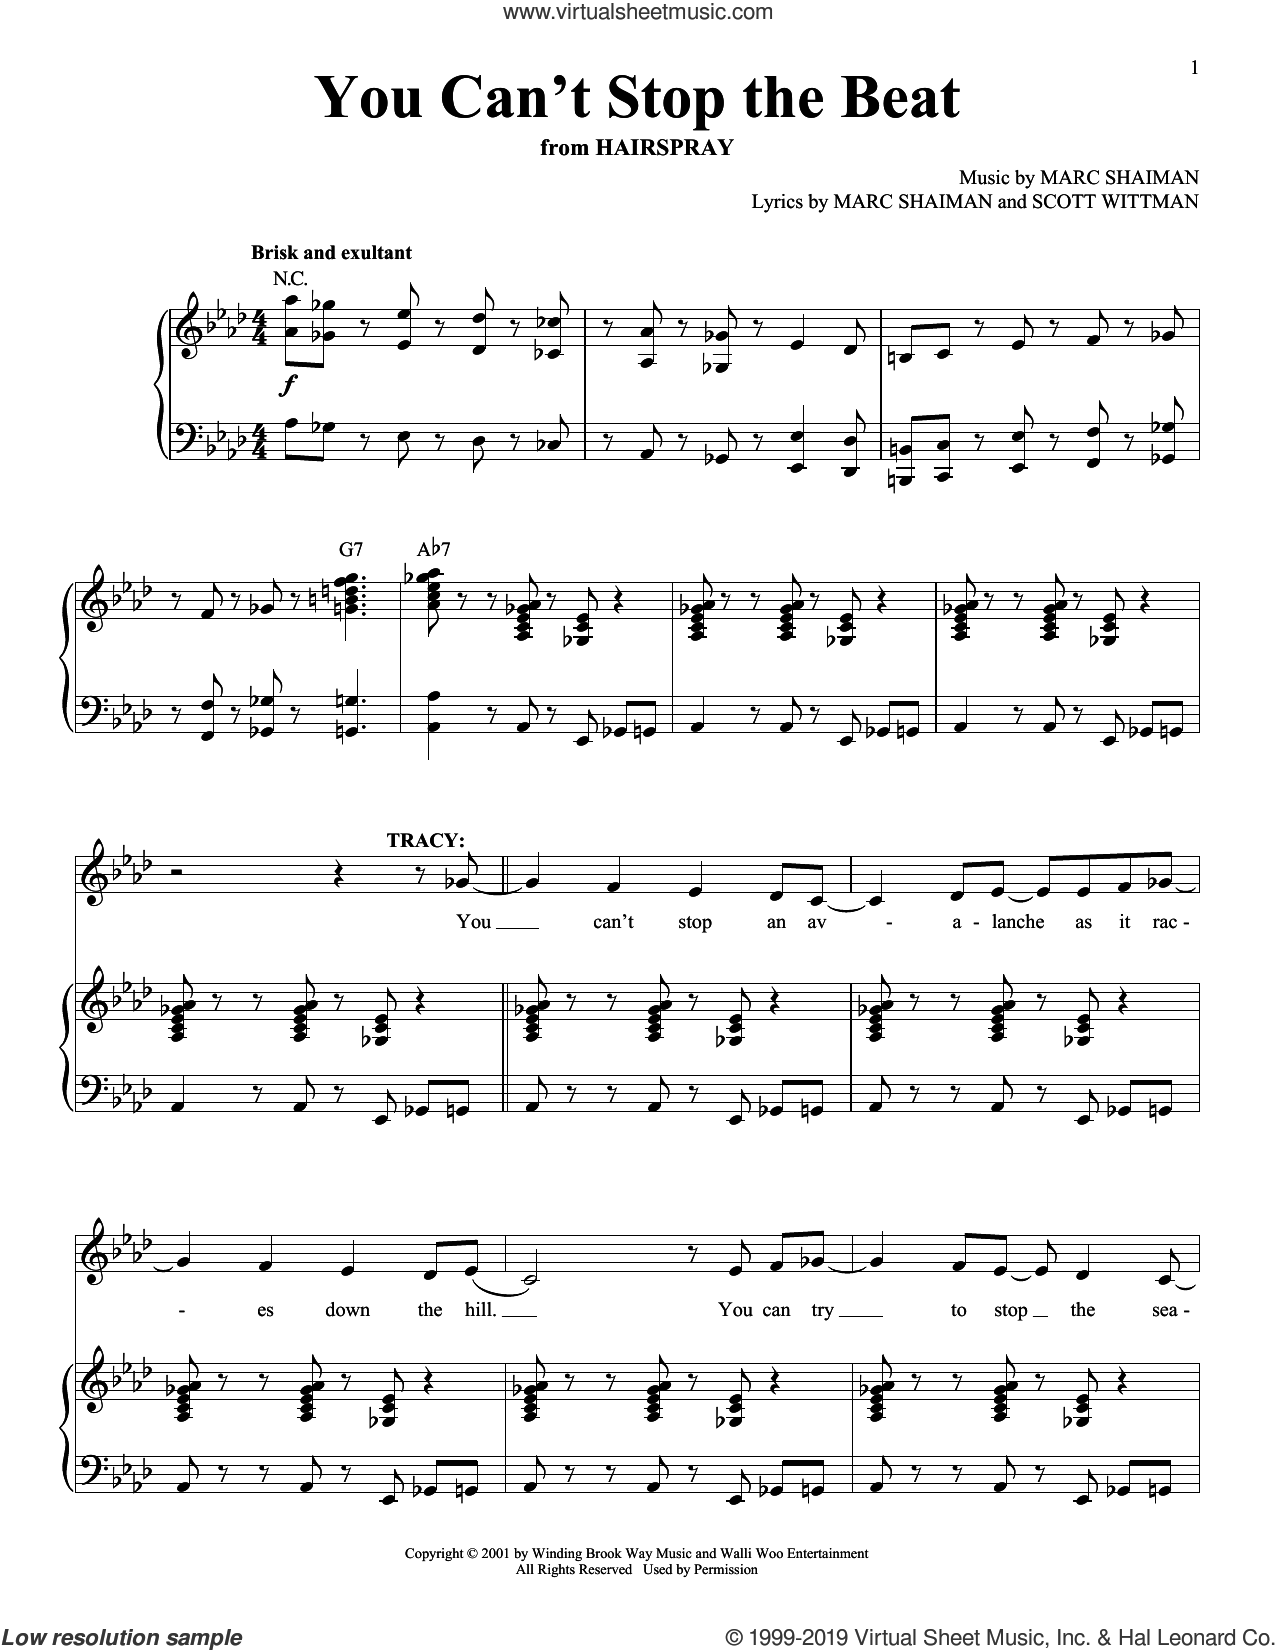 You Can't Stop The Beat sheet music for voice and piano by Marc Shaiman and Scott Wittman, intermediate skill level